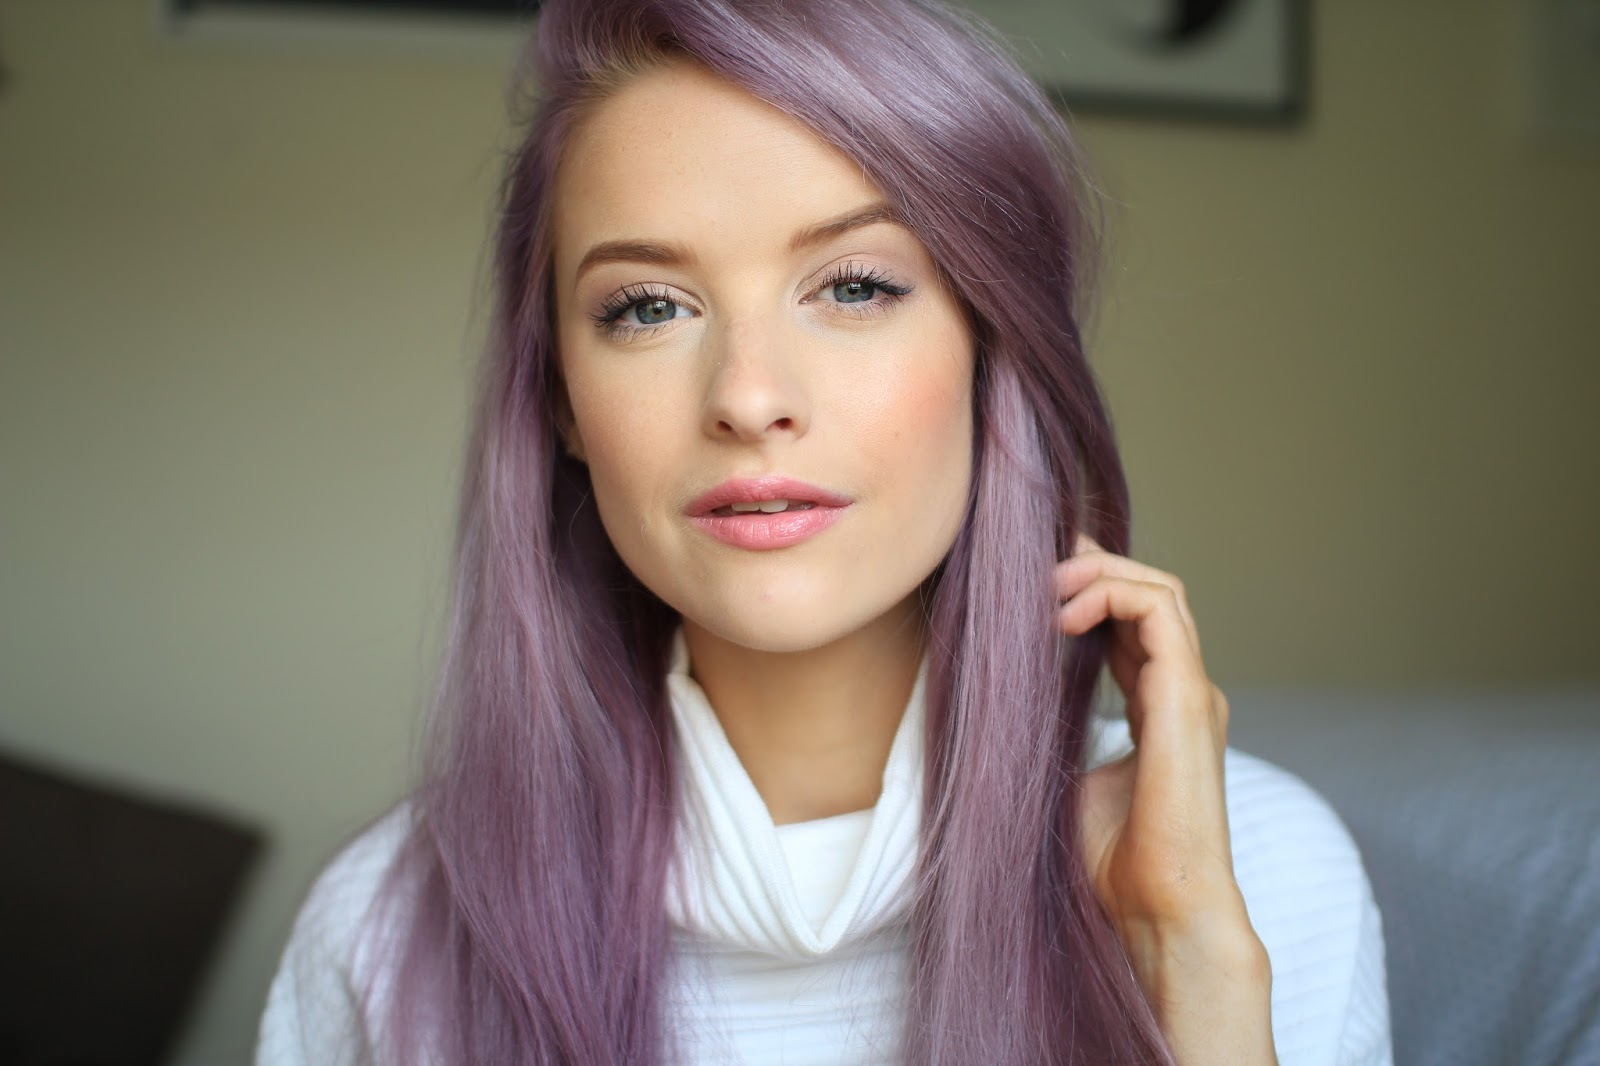 Chanel Rouge Coco Shine In Romance Inthefrow